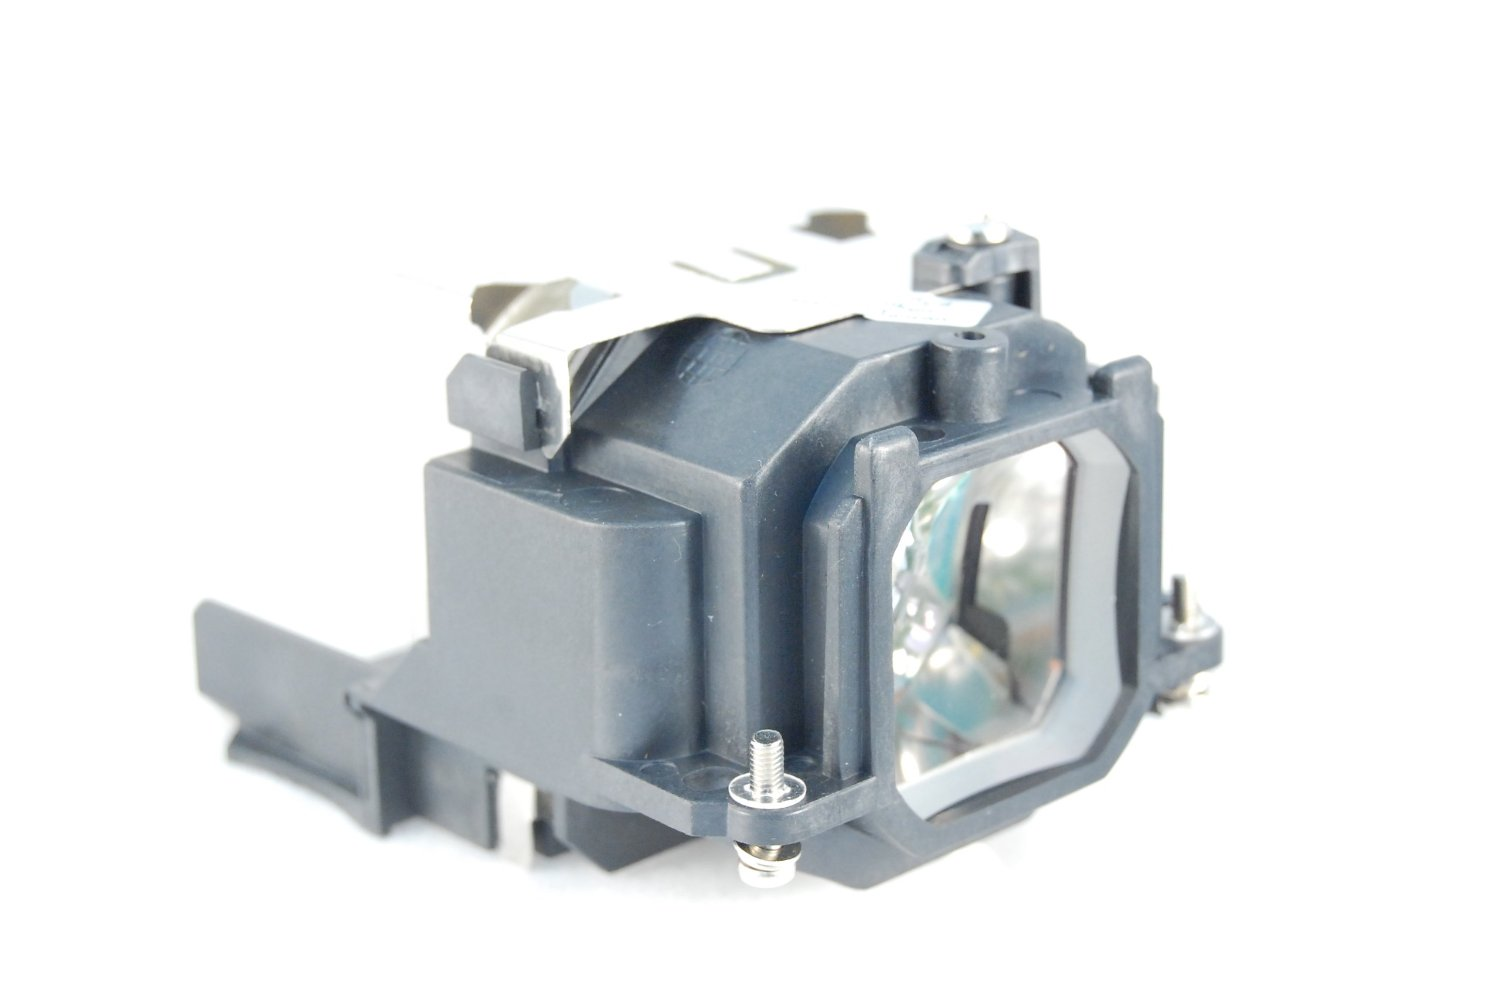 ET-LAB2 LAB2 For Panasonic PT-LB1 PT-LB2 PT-LB1EA PT-LB2EA PT-ST10 PT-LB3E Projector Lamp Bulb with housing projector lamp bulb et la701 etla701 for panasonic pt l711nt pt l711x pt l501e with housing